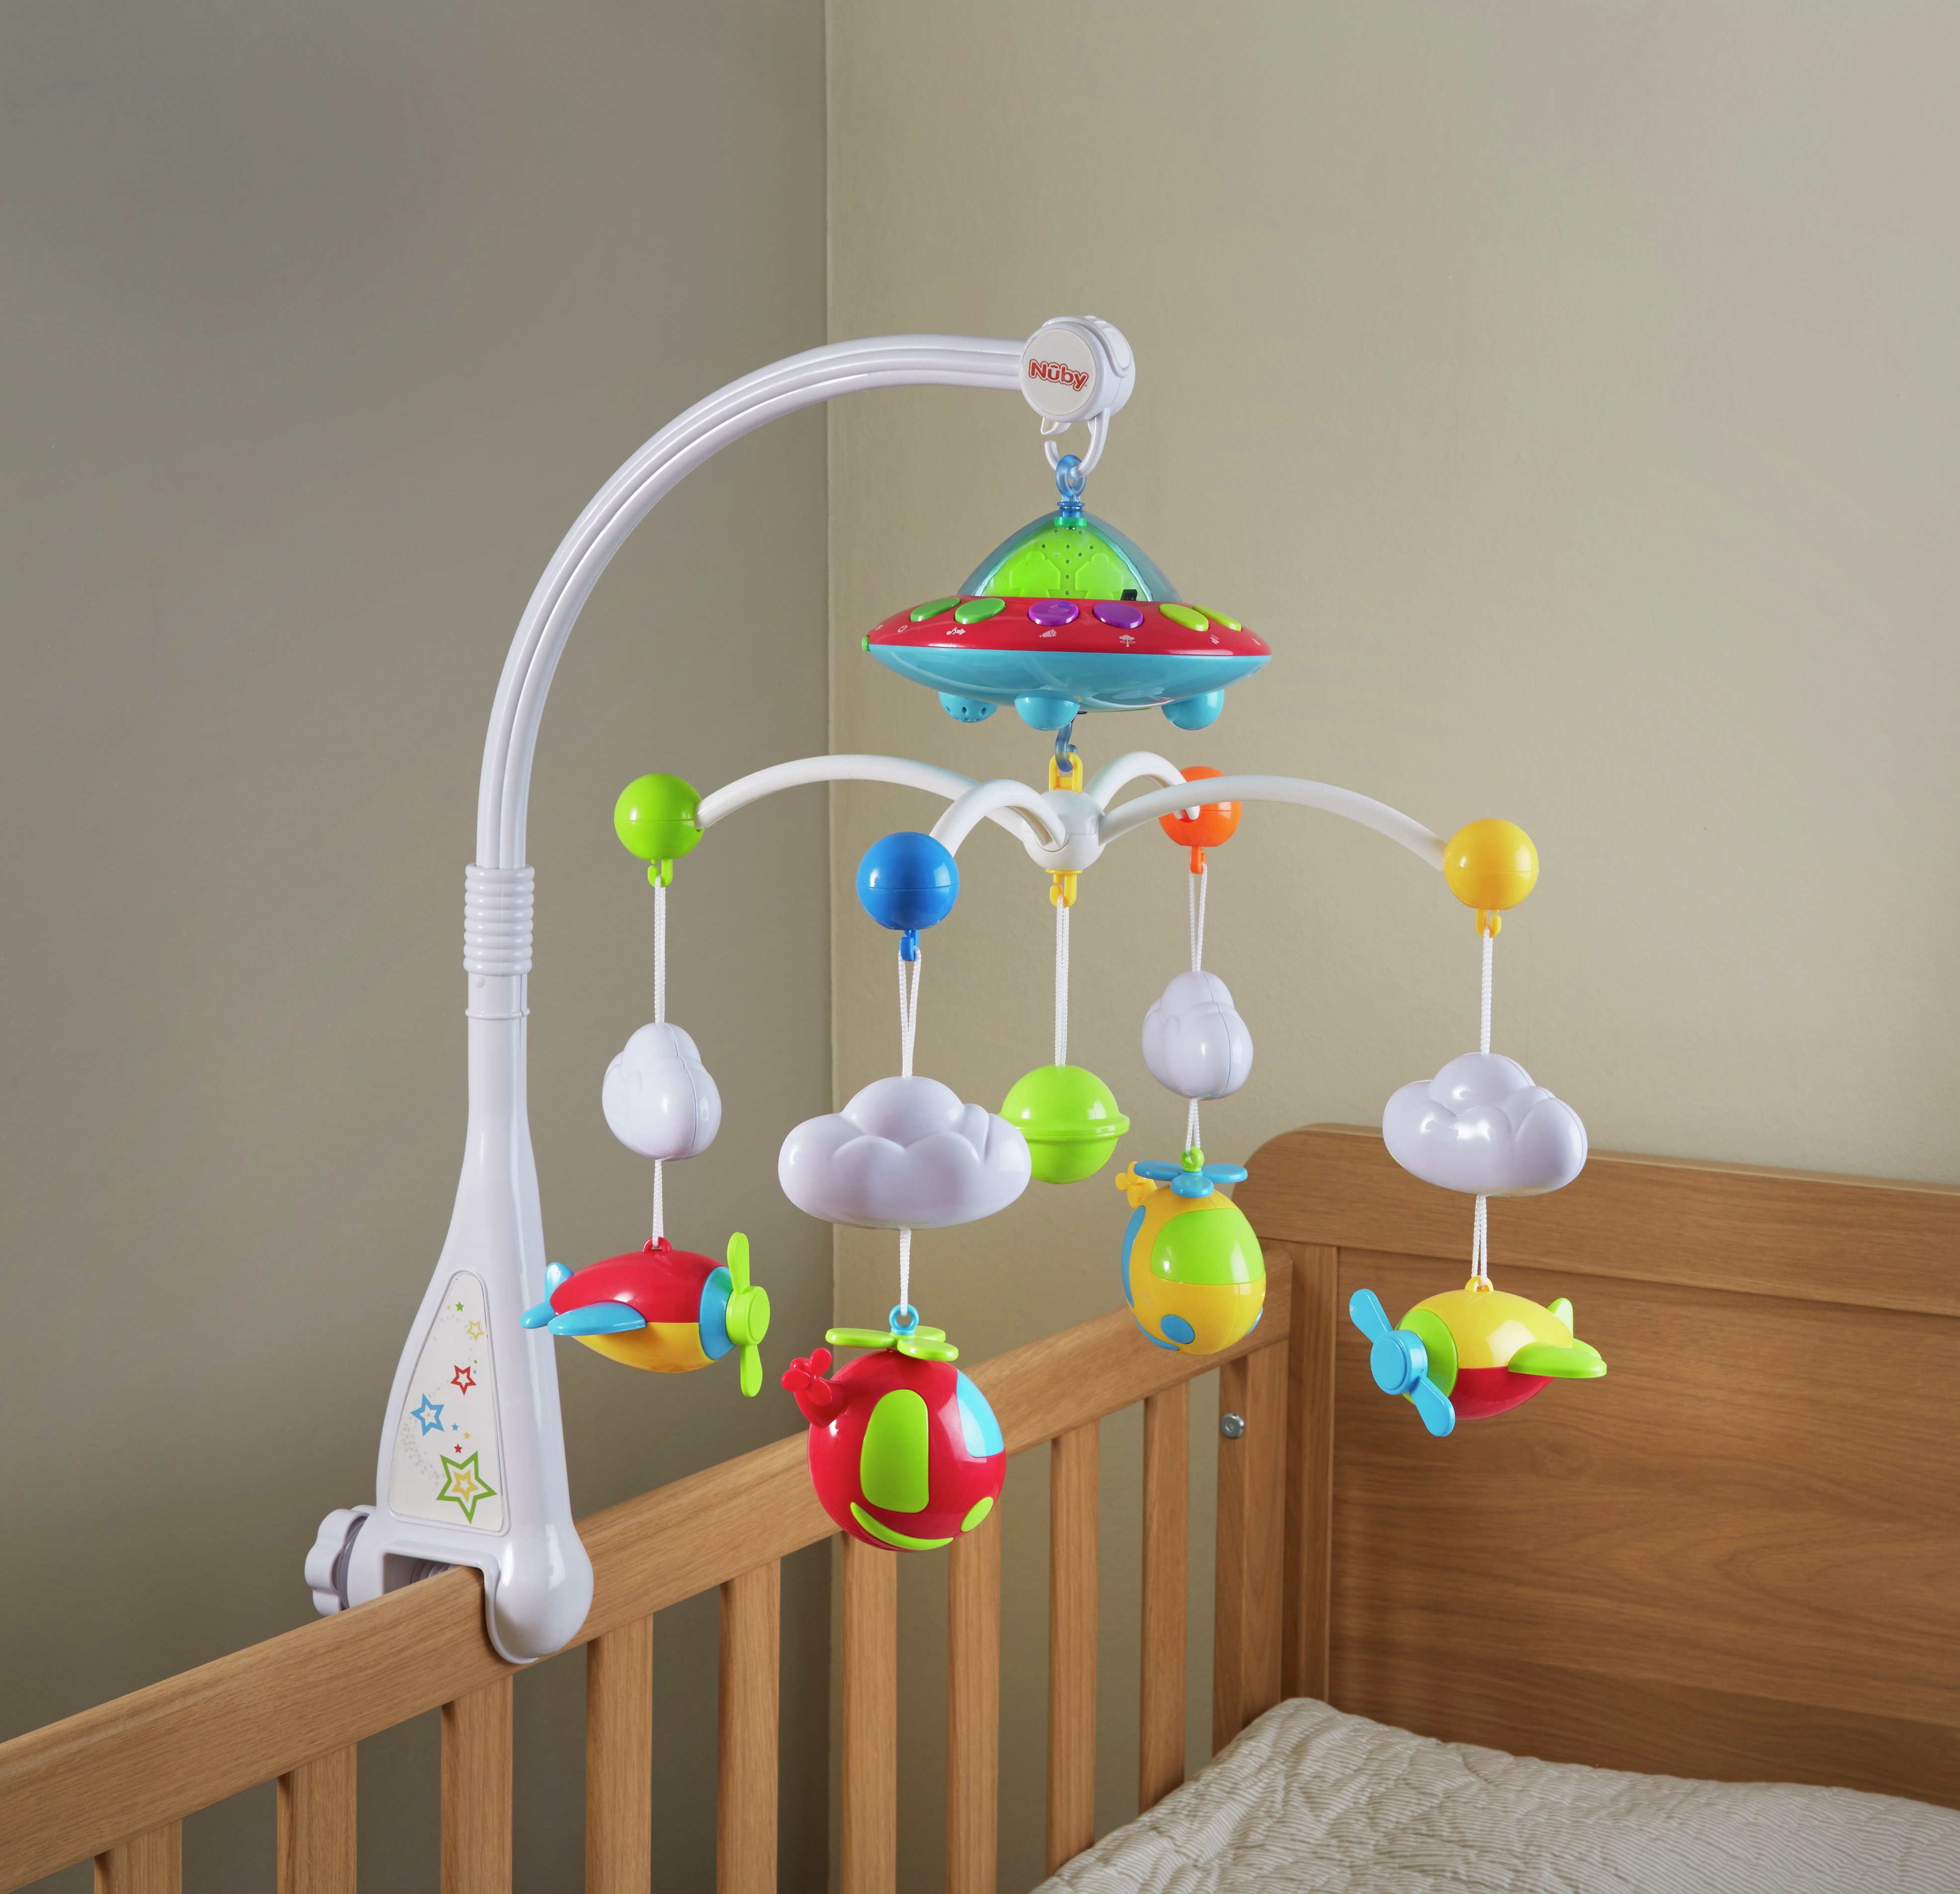 Nuby's Musical Cot Mobile